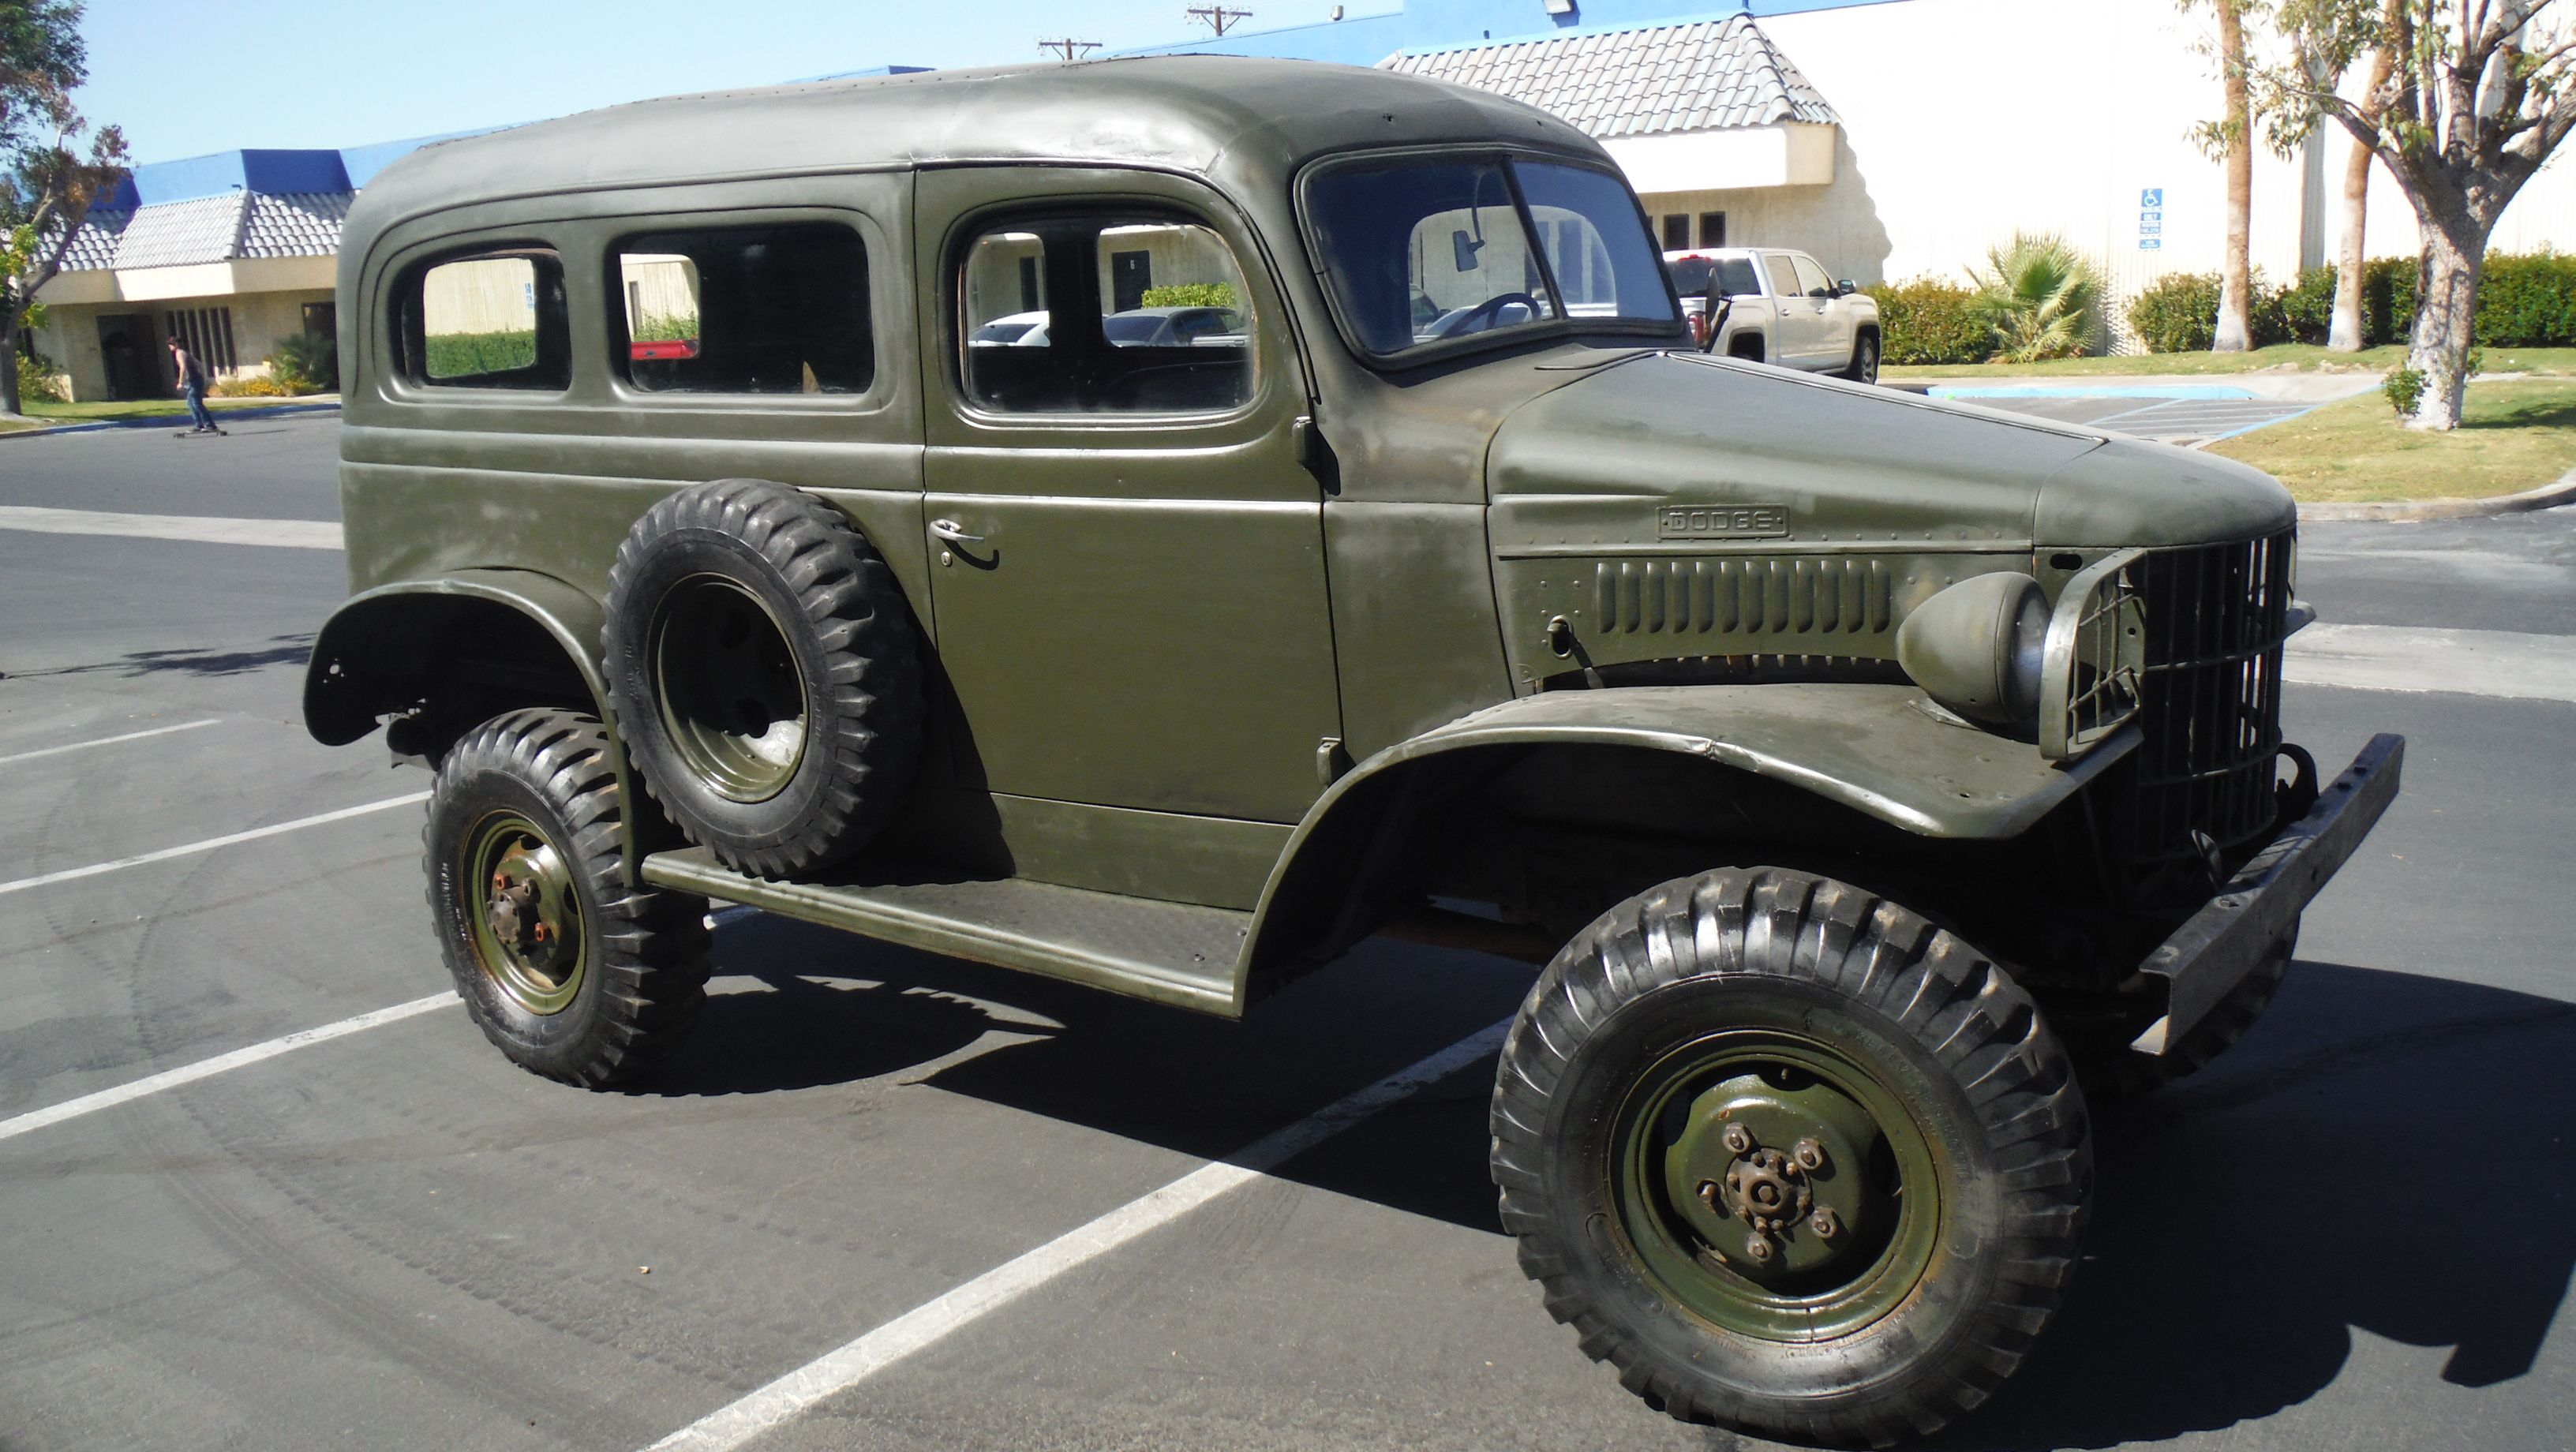 Pin On For Sale Rough Ready Dodge Power Wagon M37 M43 Wc